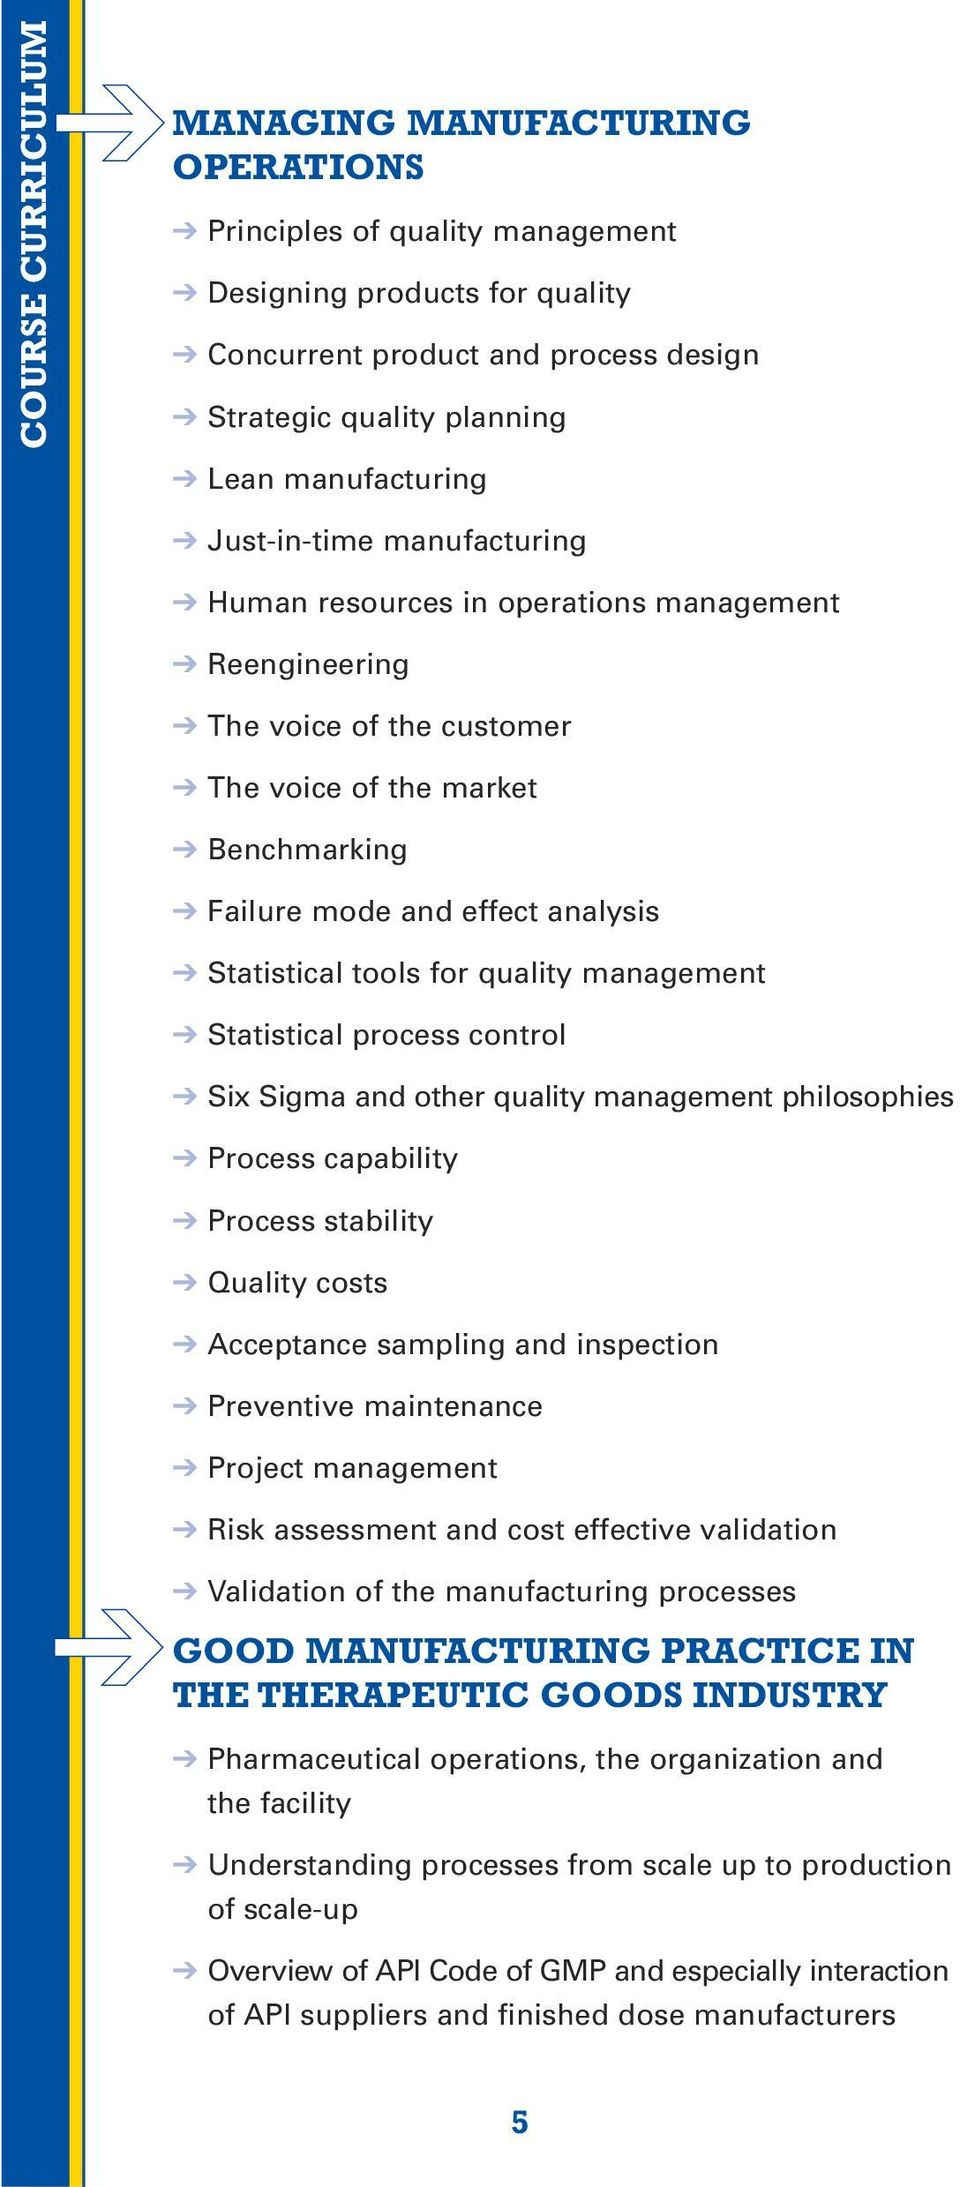 quality management Statistical process control Six Sigma and other quality management philosophies Process capability Process stability Quality costs Acceptance sampling and inspection Preventive